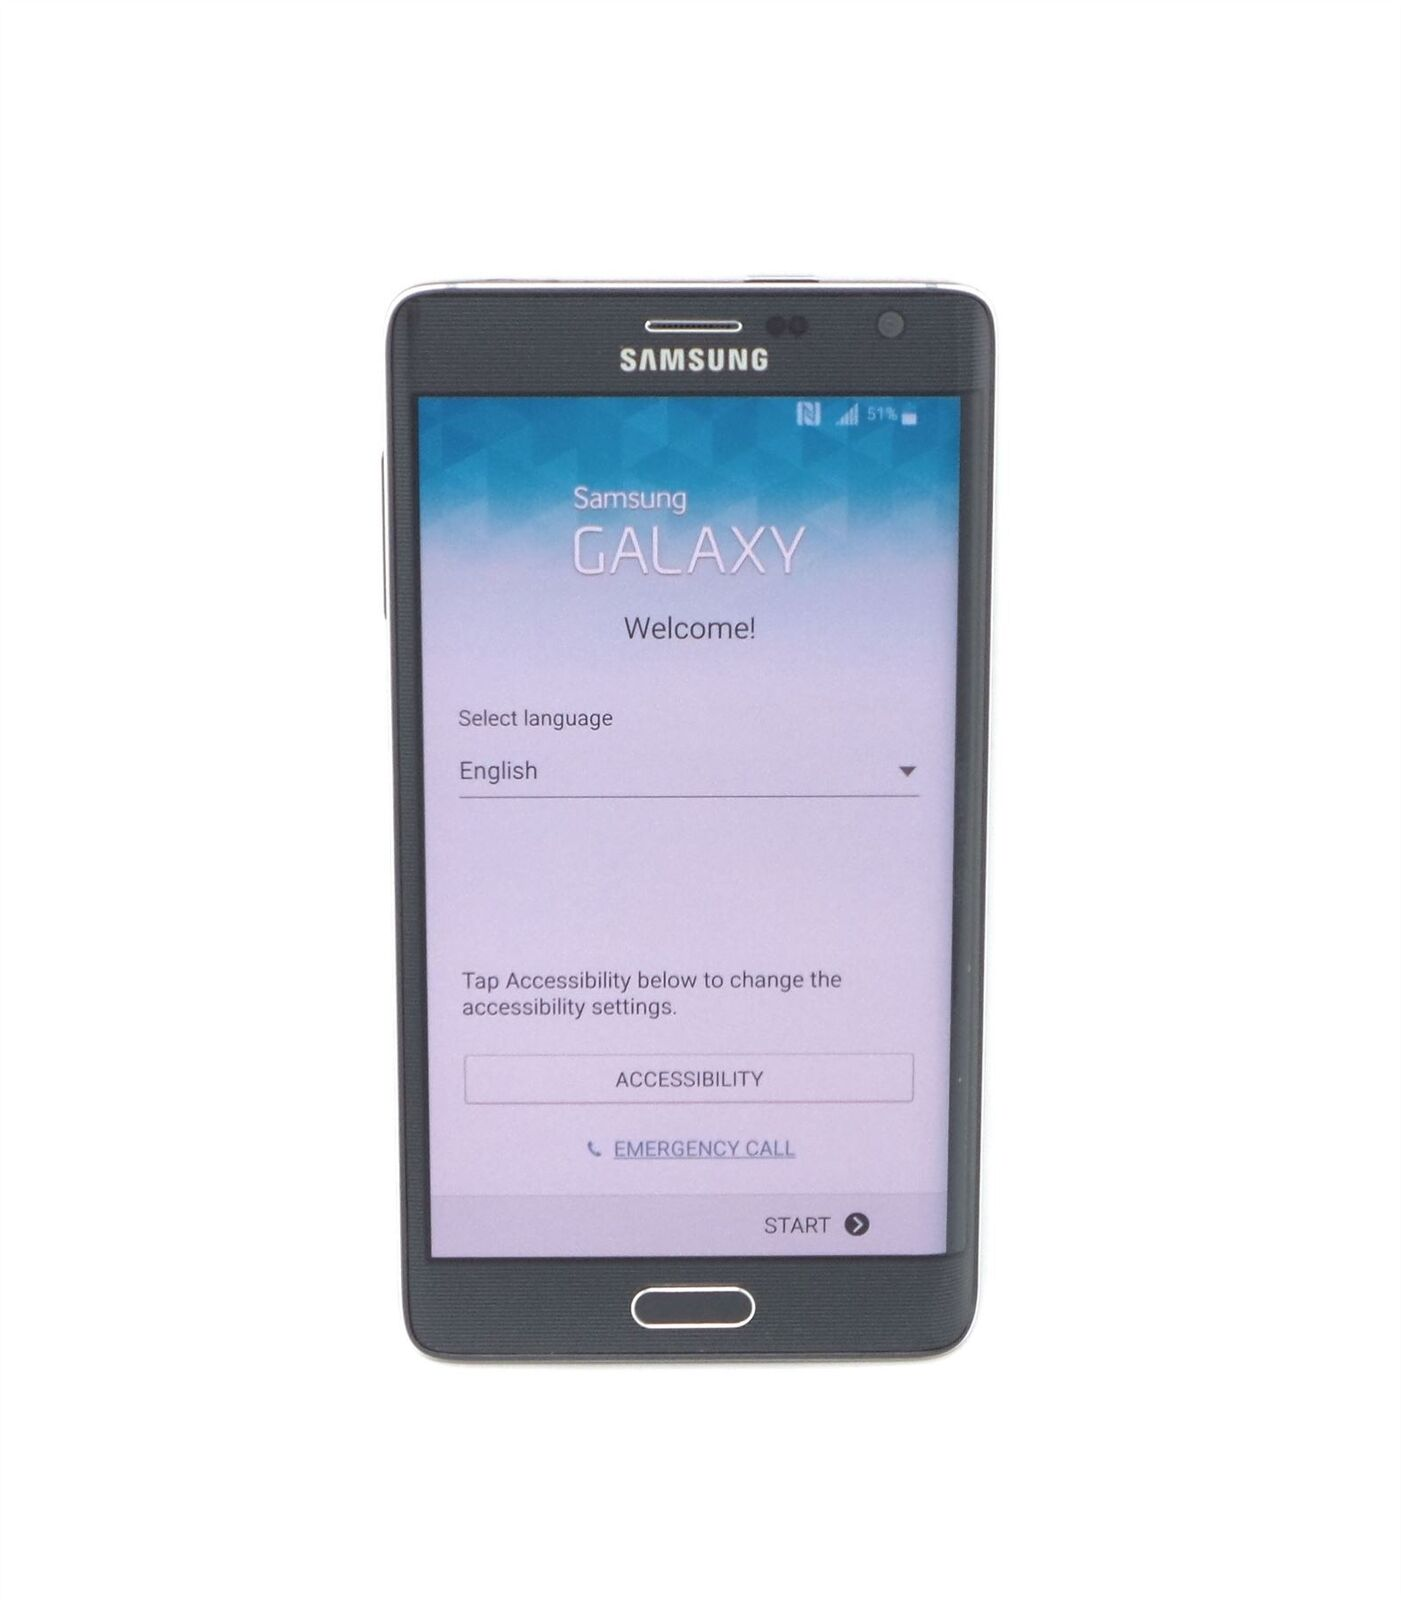 Samsung Galaxy Note Edge 56 Smartphone Gsm Unlocked 32gb Black 4g Samsunggalaxy Lte New 1 Of 7free Shipping